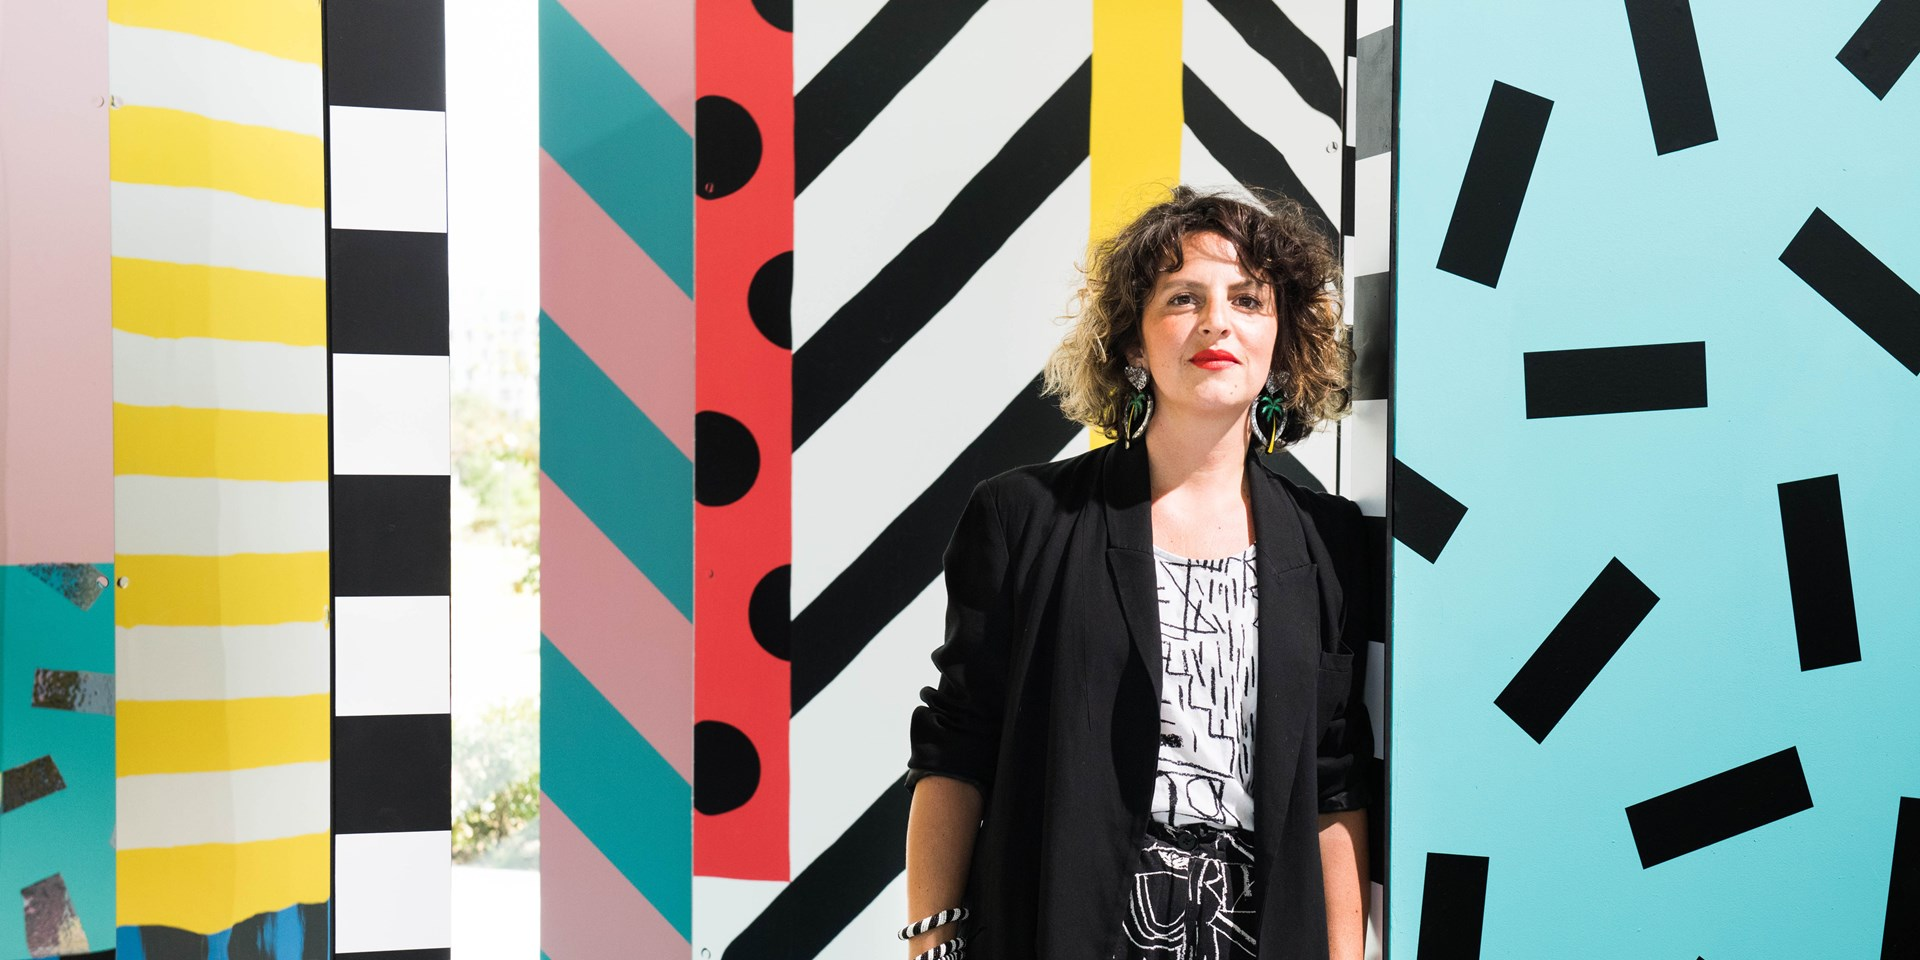 A portrait of Camille Walala against a colourful background that she designed